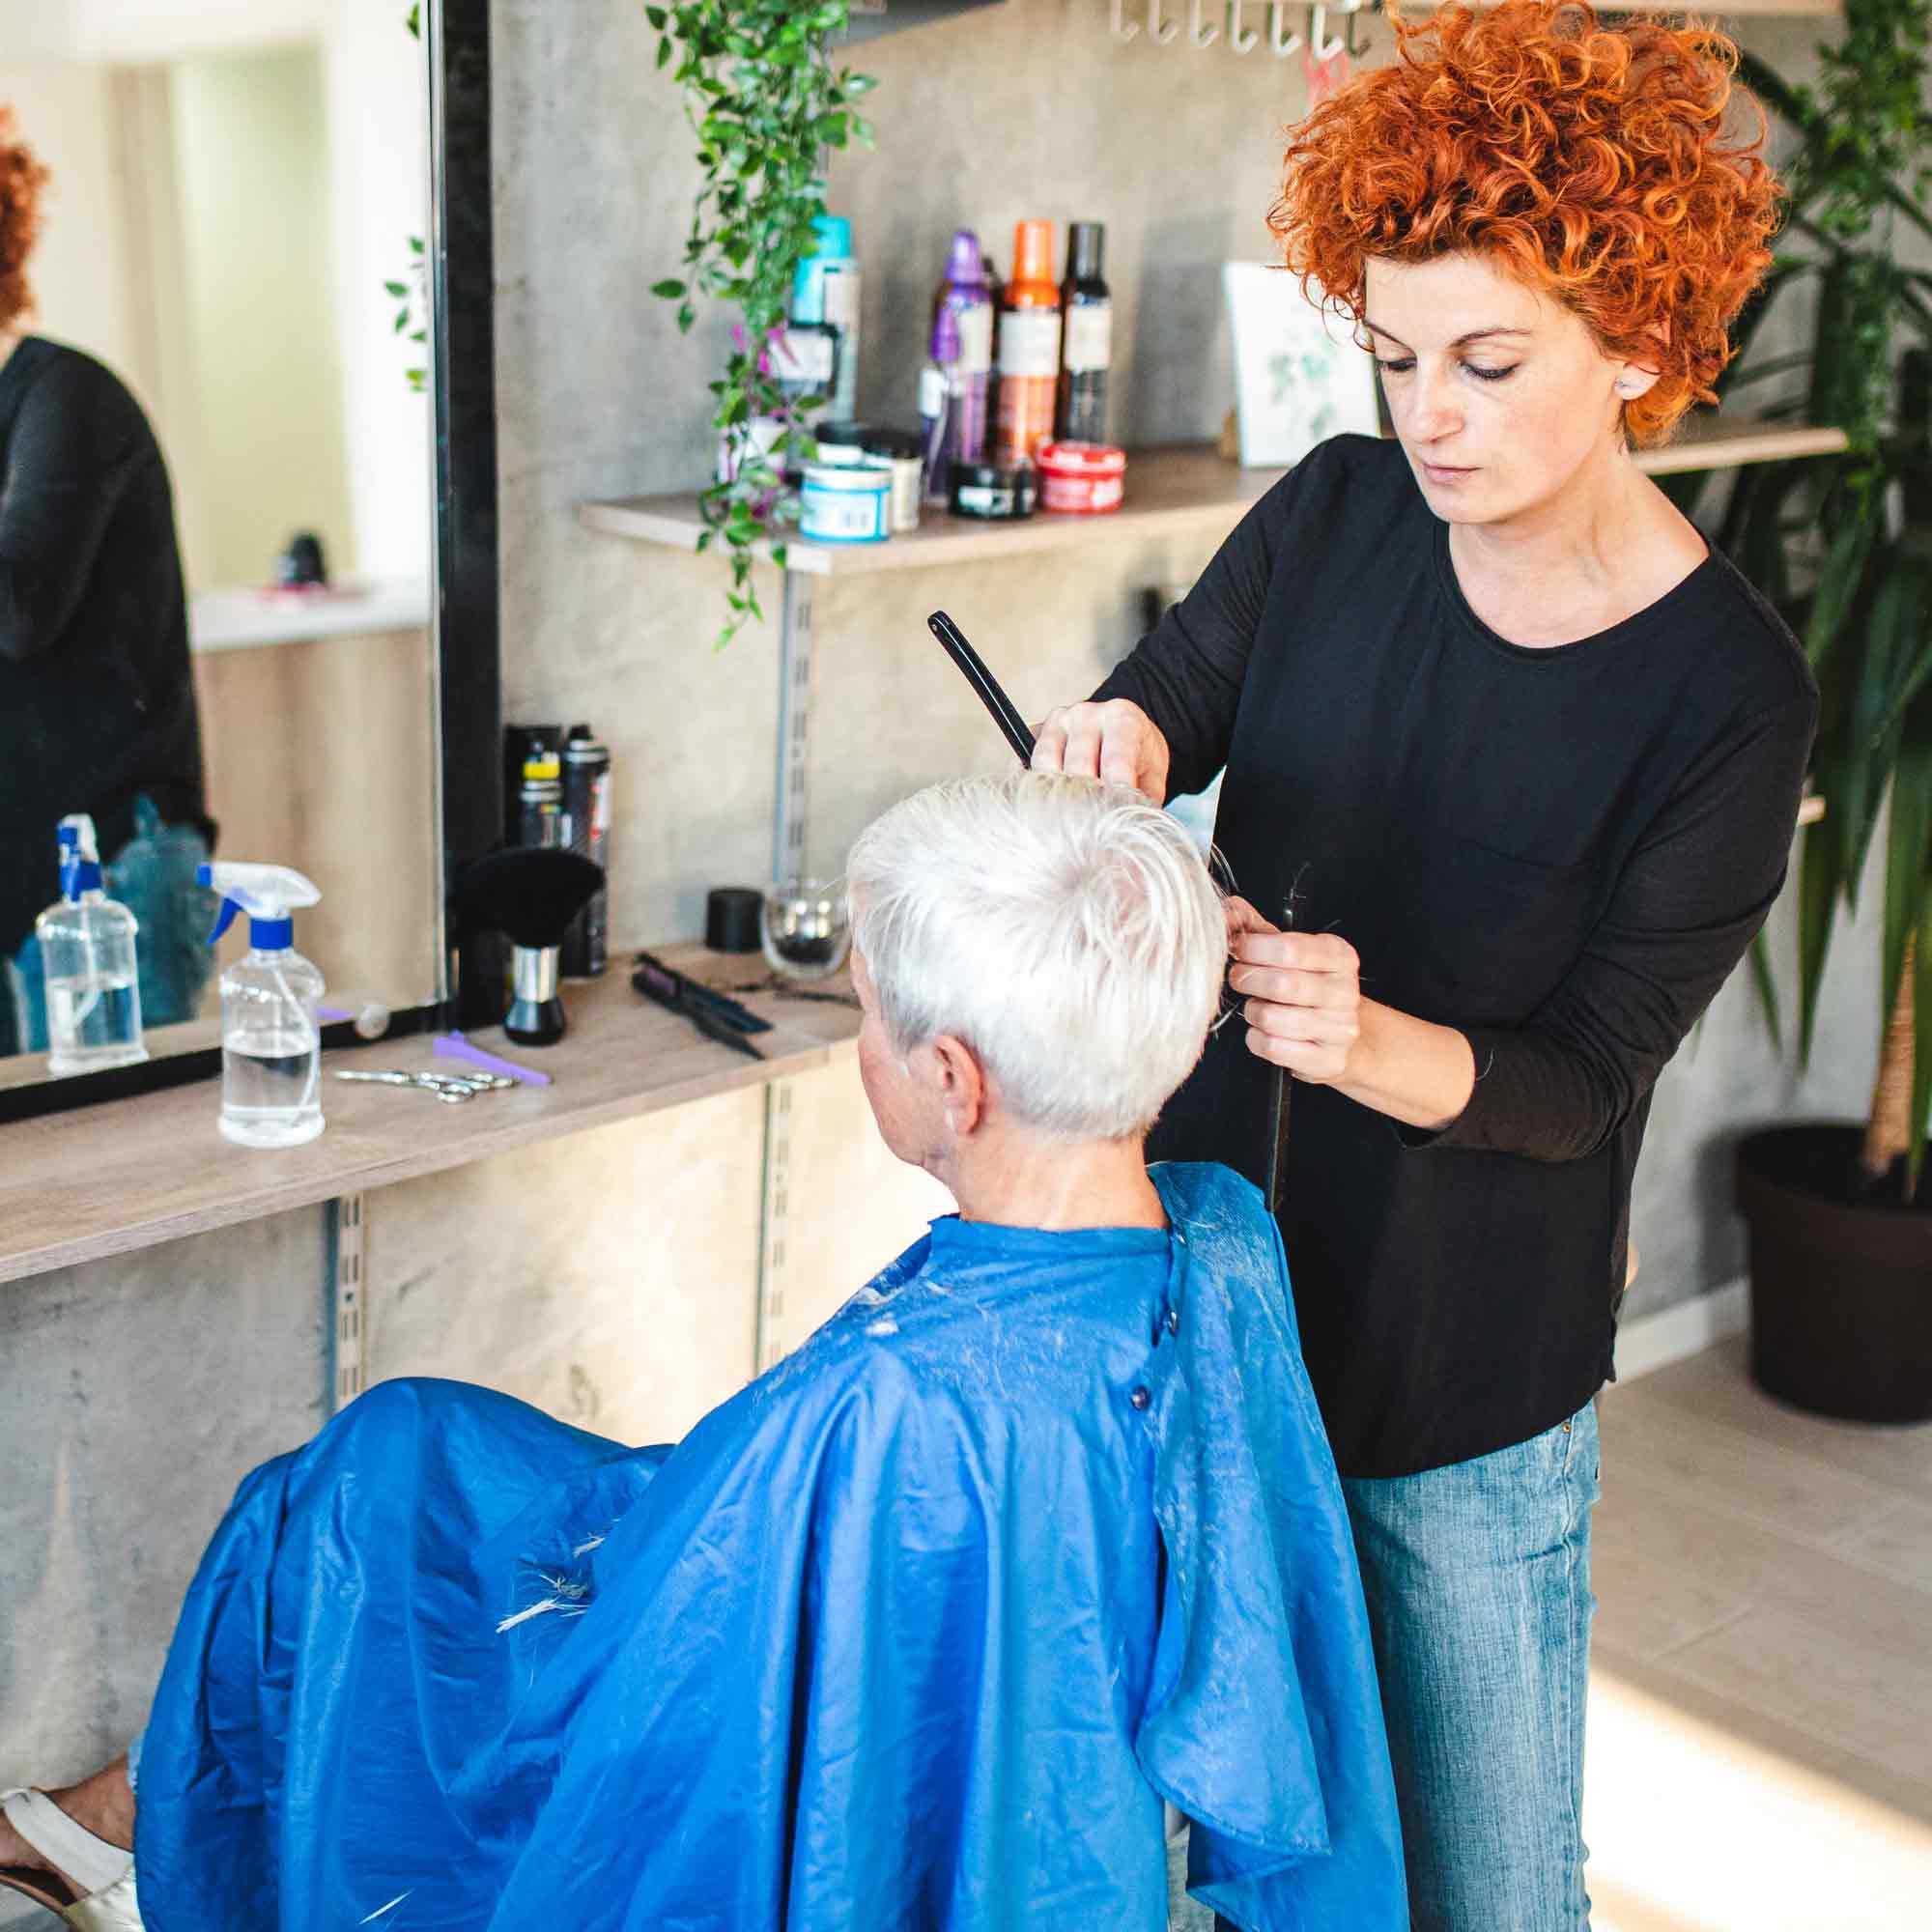 Assisted Living and Memory Care Amenities & Services Hair Cut - The Pinnacle of Oxford